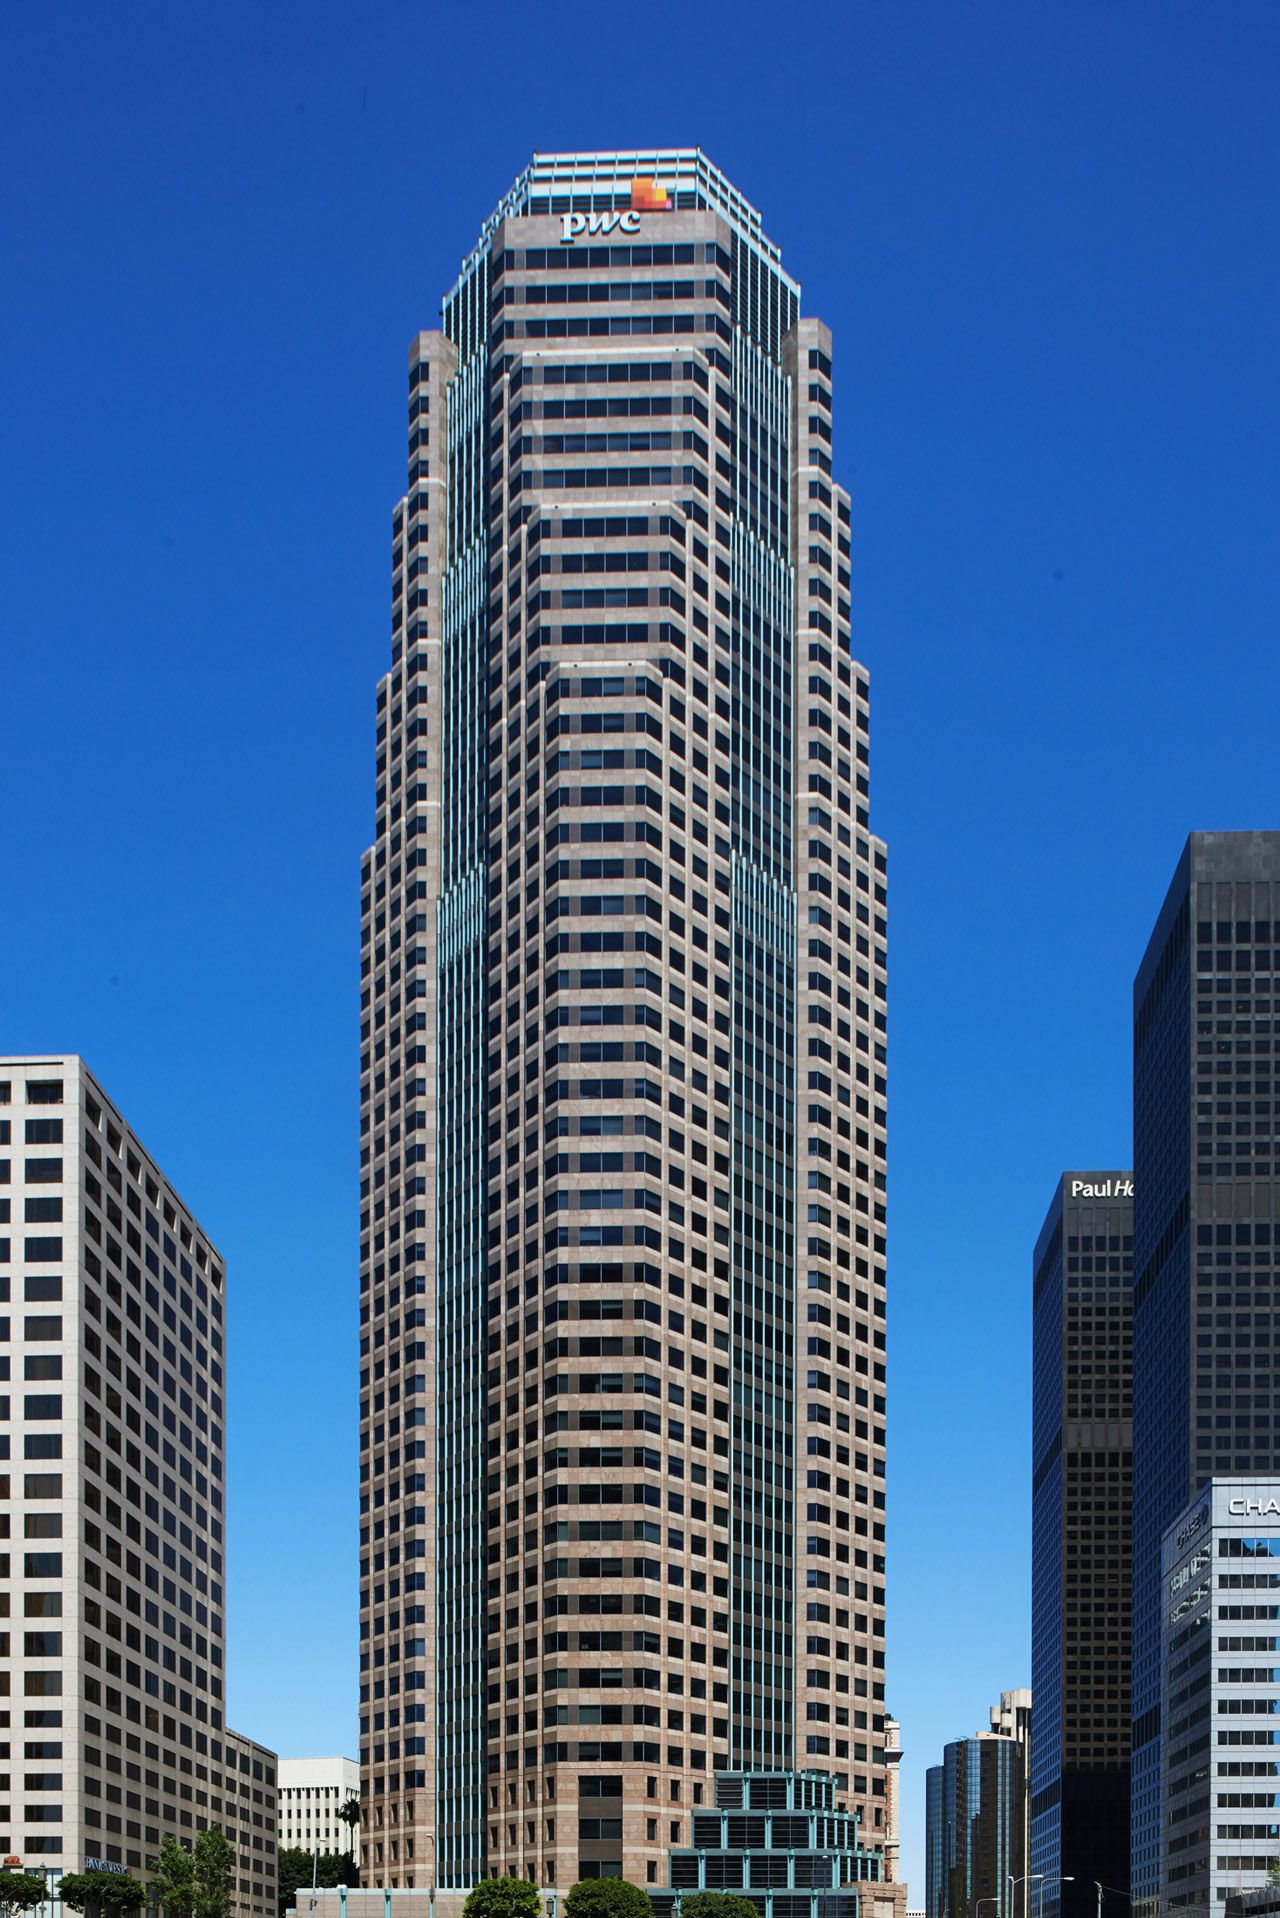 002 Commercial Architectural Photography Portfolio of Architectural Photographer Peter Christiansen Valli - PWC Tower, Los Angeles.jpg